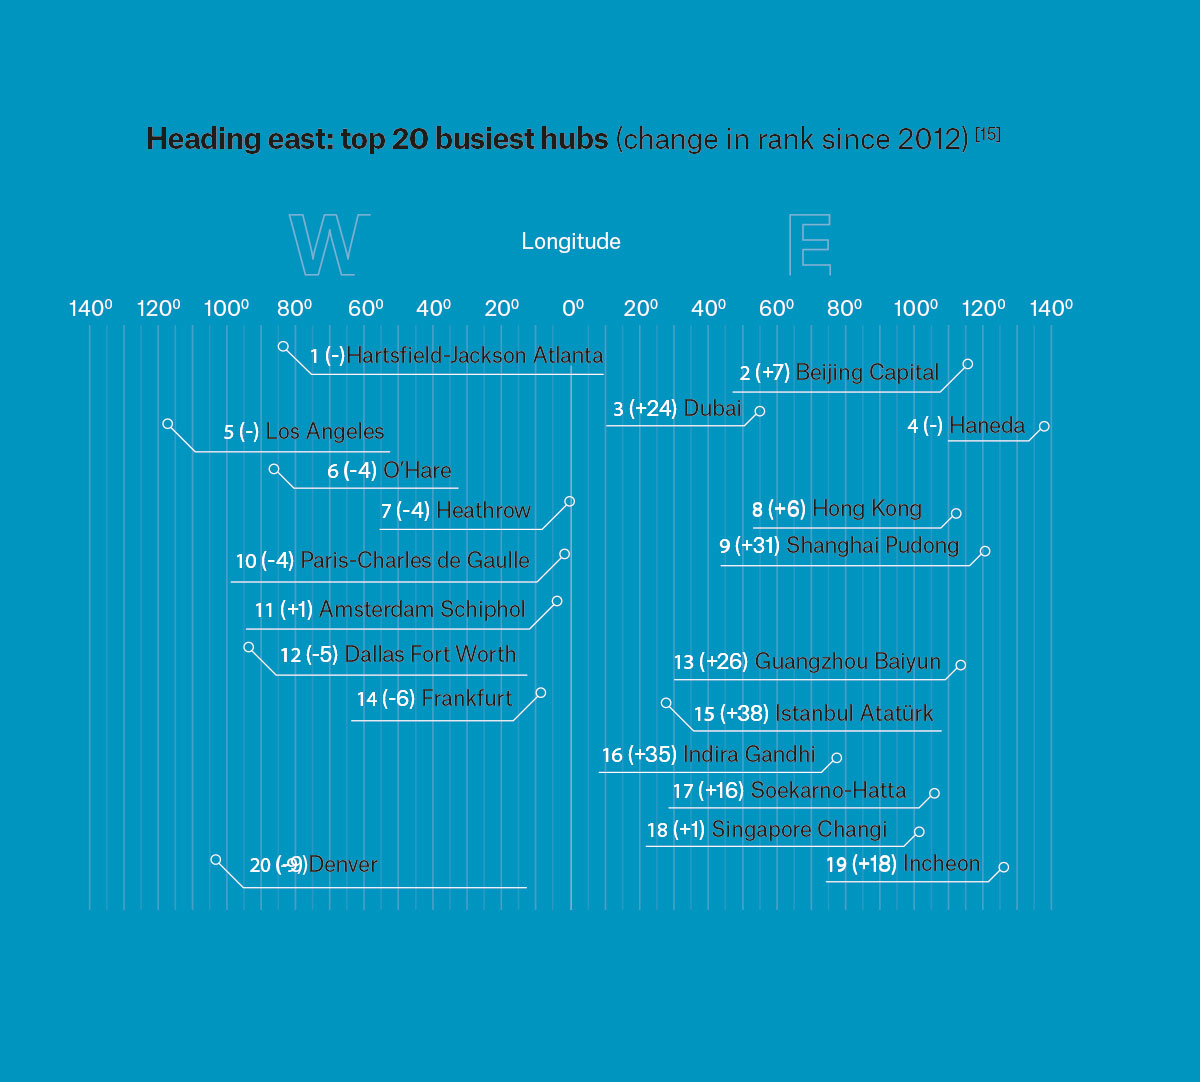 graph showing the top 20 busiest hubs across the world